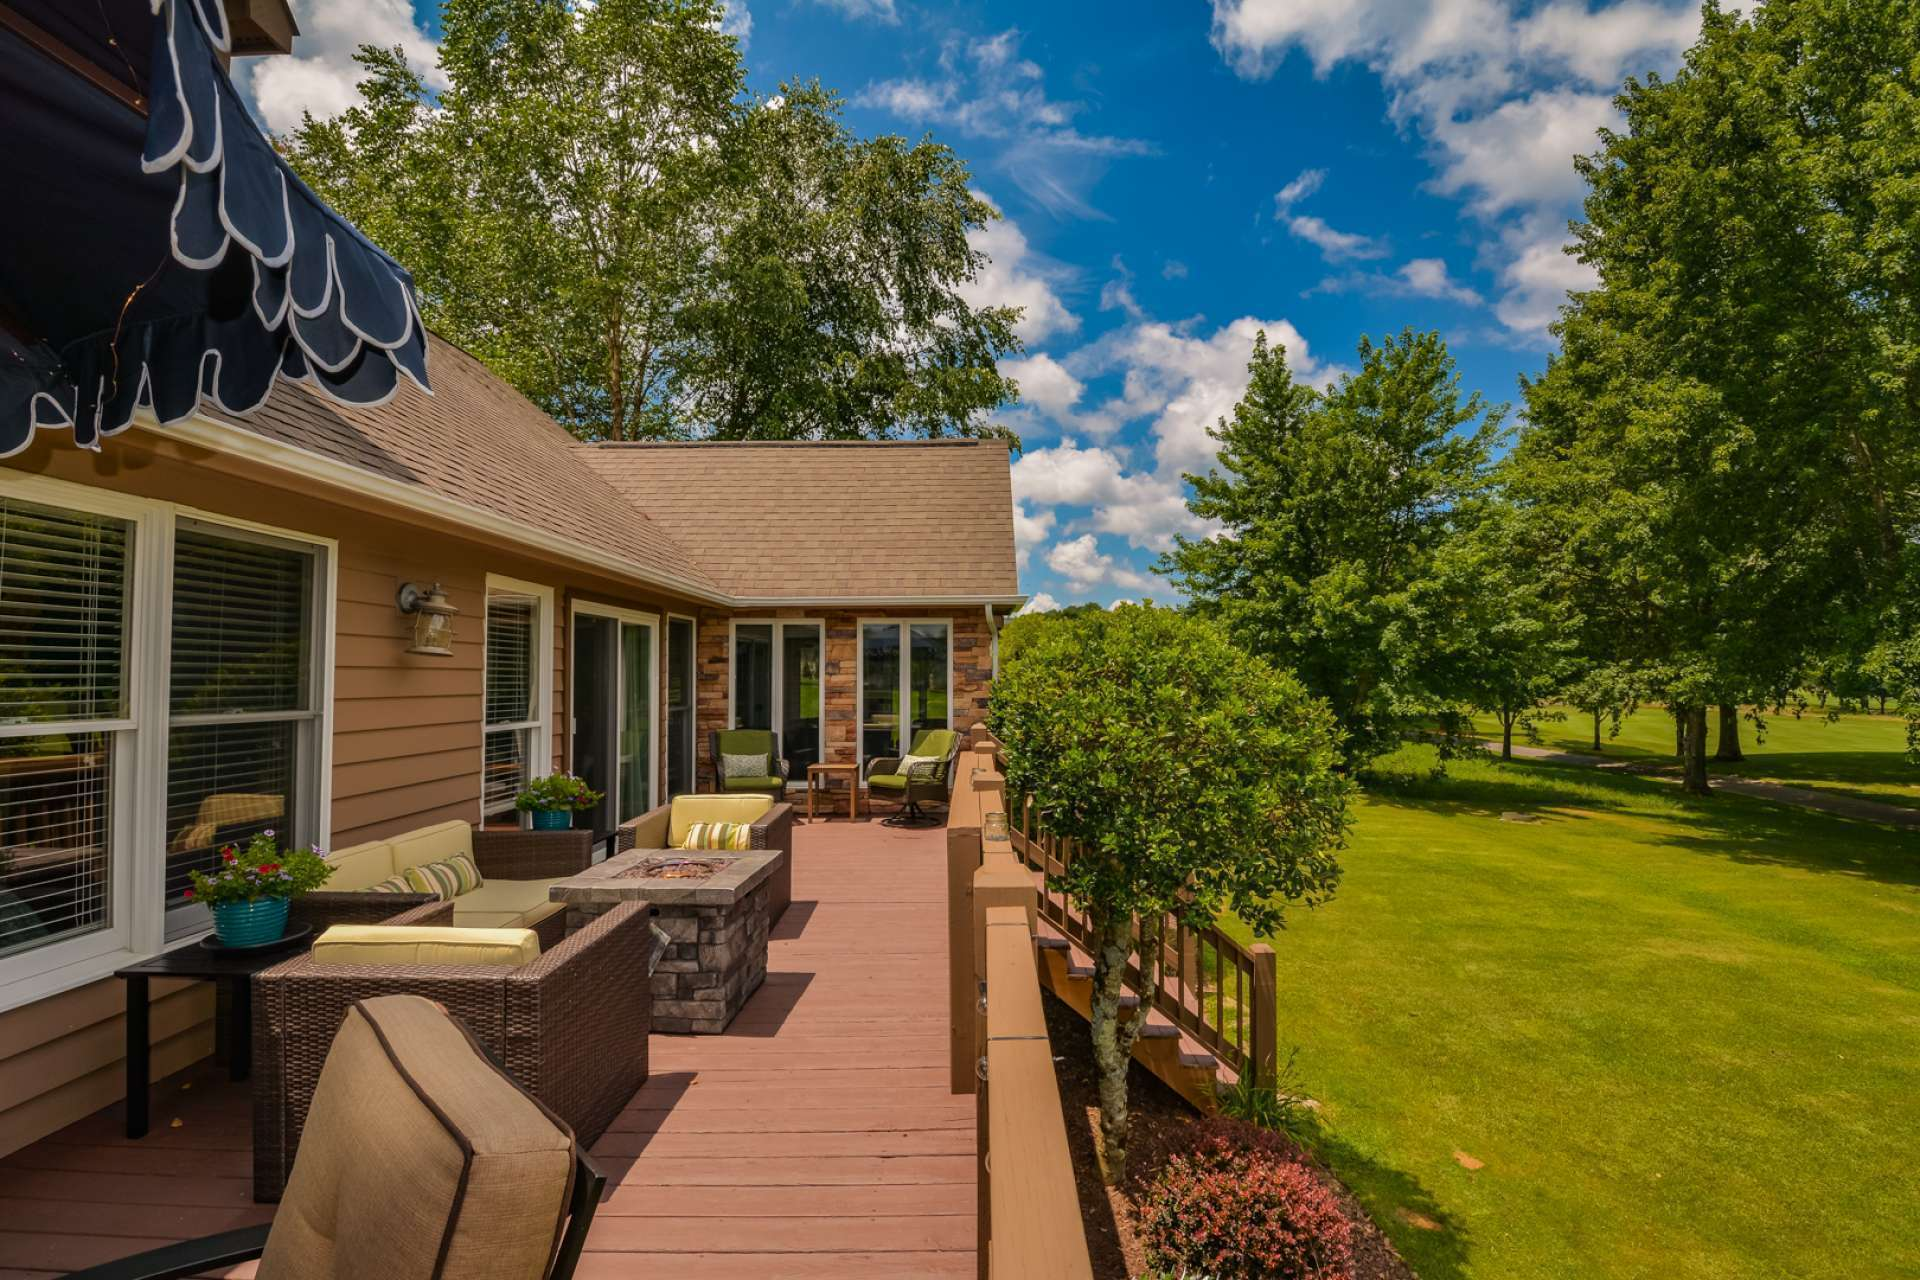 An open spacious deck overlooking lush landscaping and the pond creates an outdoor living area that is pure paradise.